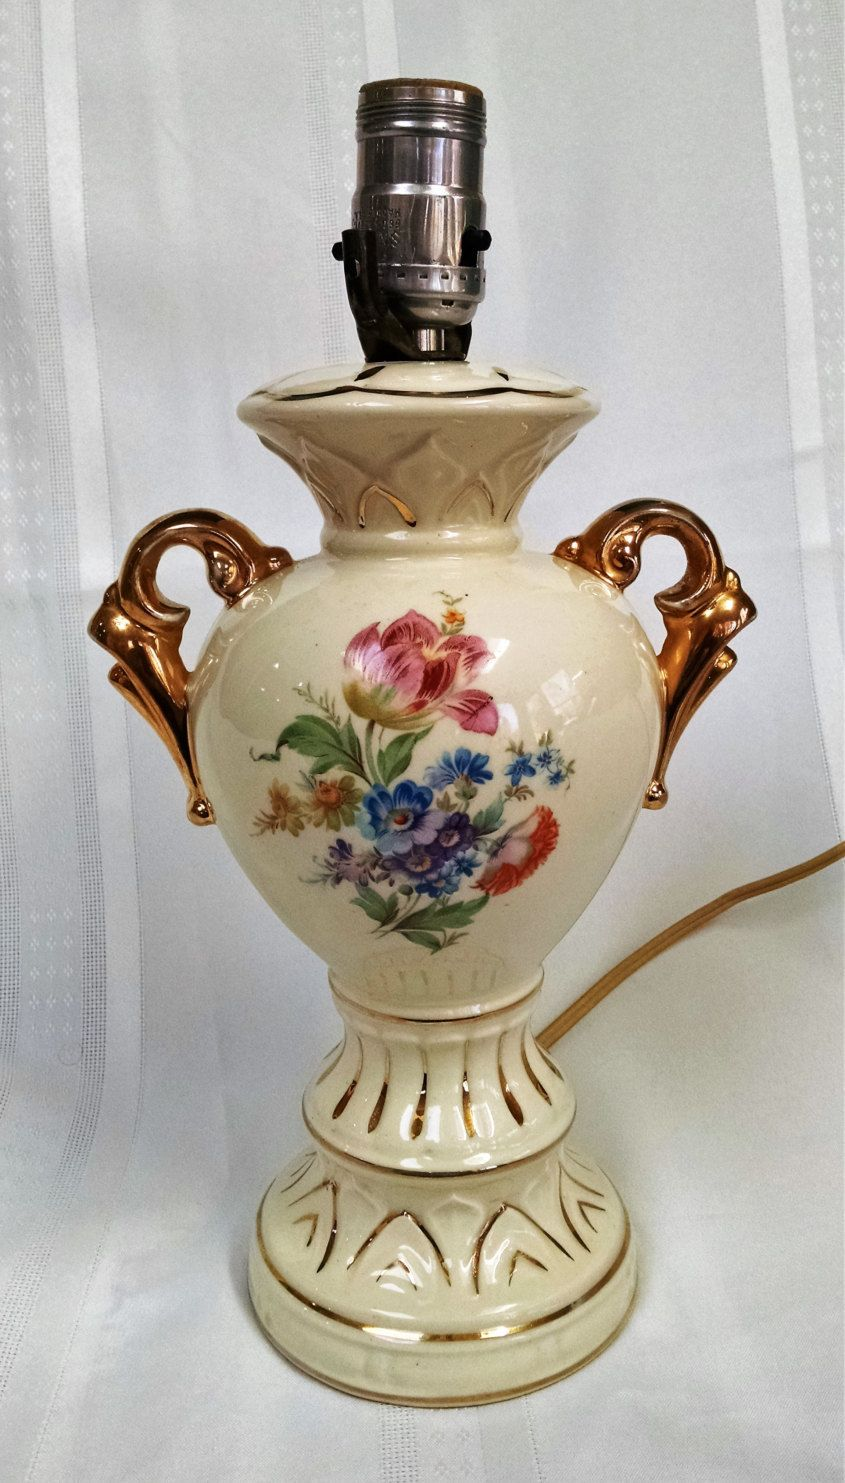 Vintage Ceramic China Lamp With Floral Design And Ornate Gold Trim Table Lamp Ceramic Table Lamps Vintage Ceramic Lamp Makeover